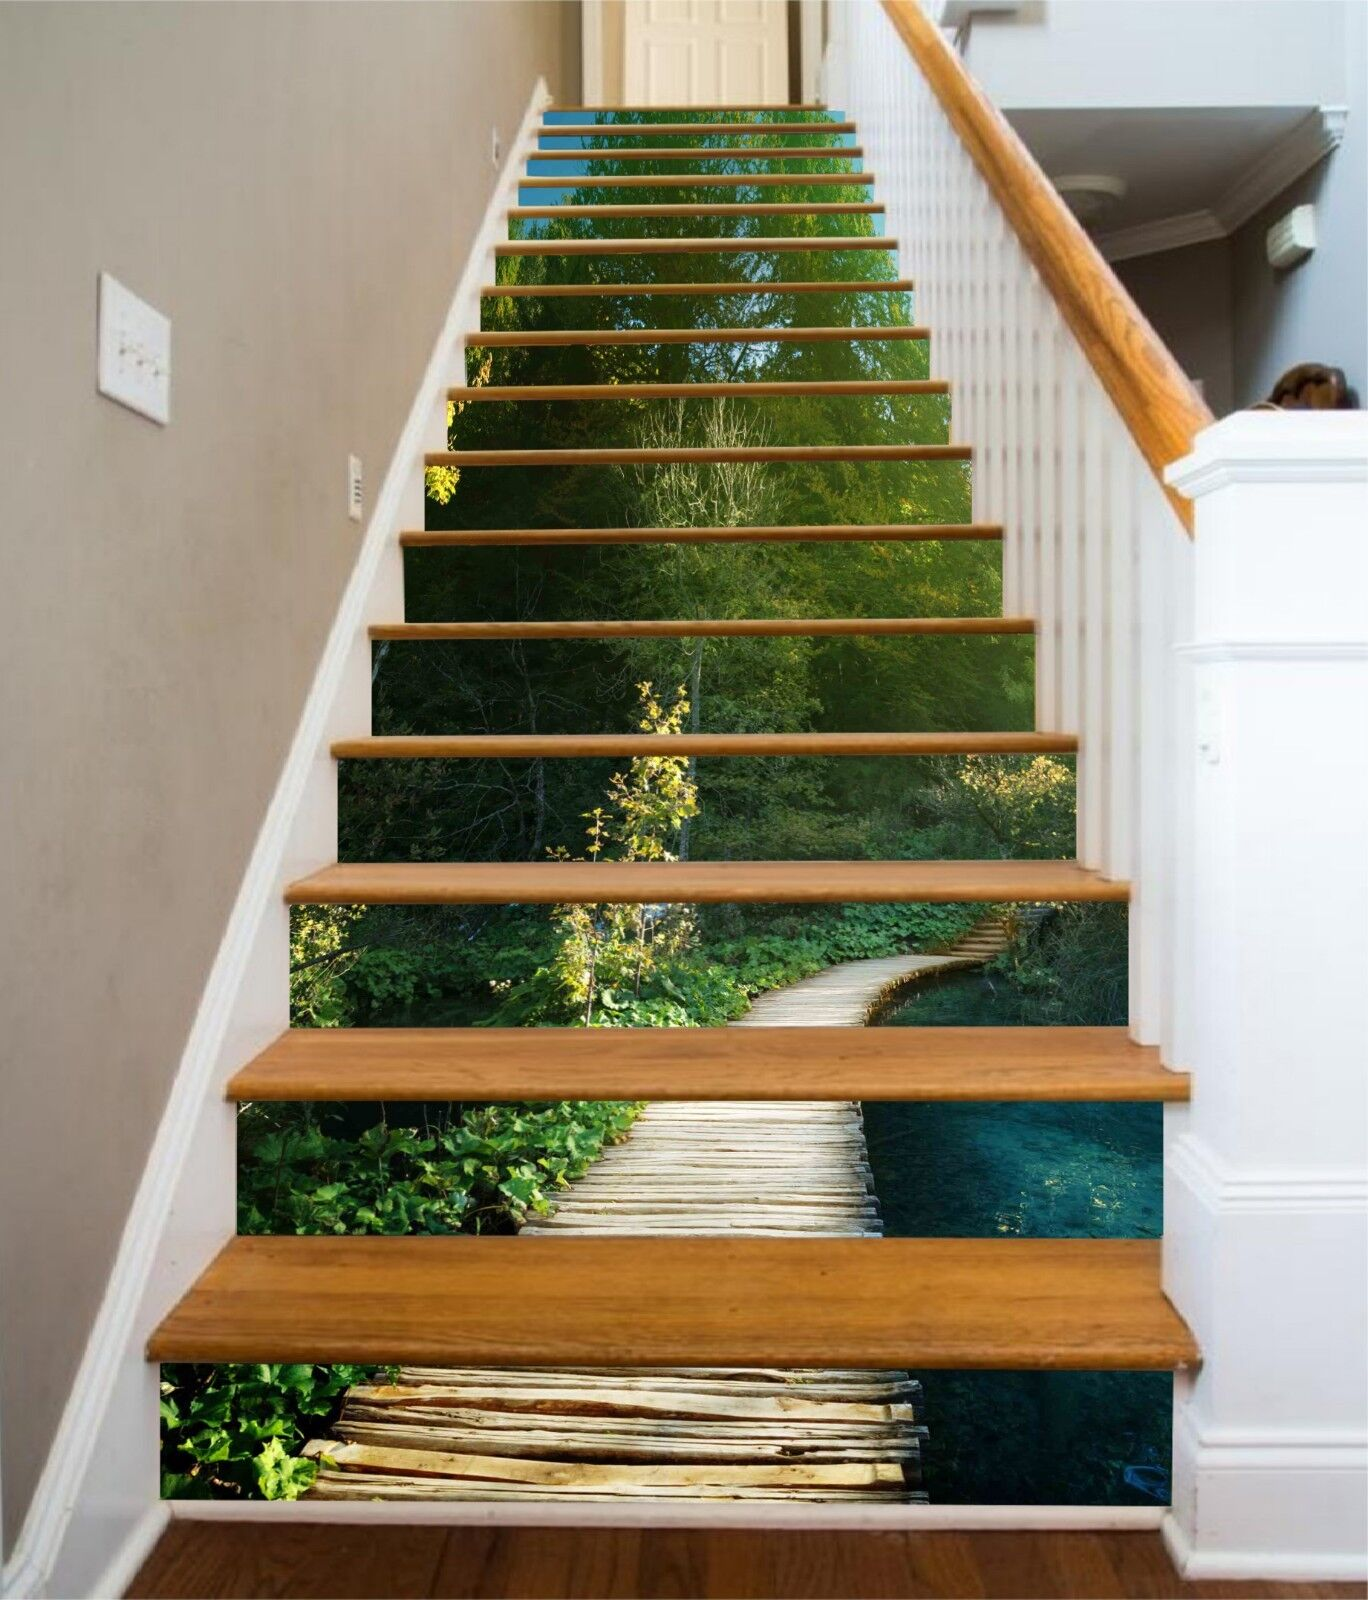 3D Green Trees Road Stair Risers Decoration Photo Mural Vinyl Decal Wallpaper US